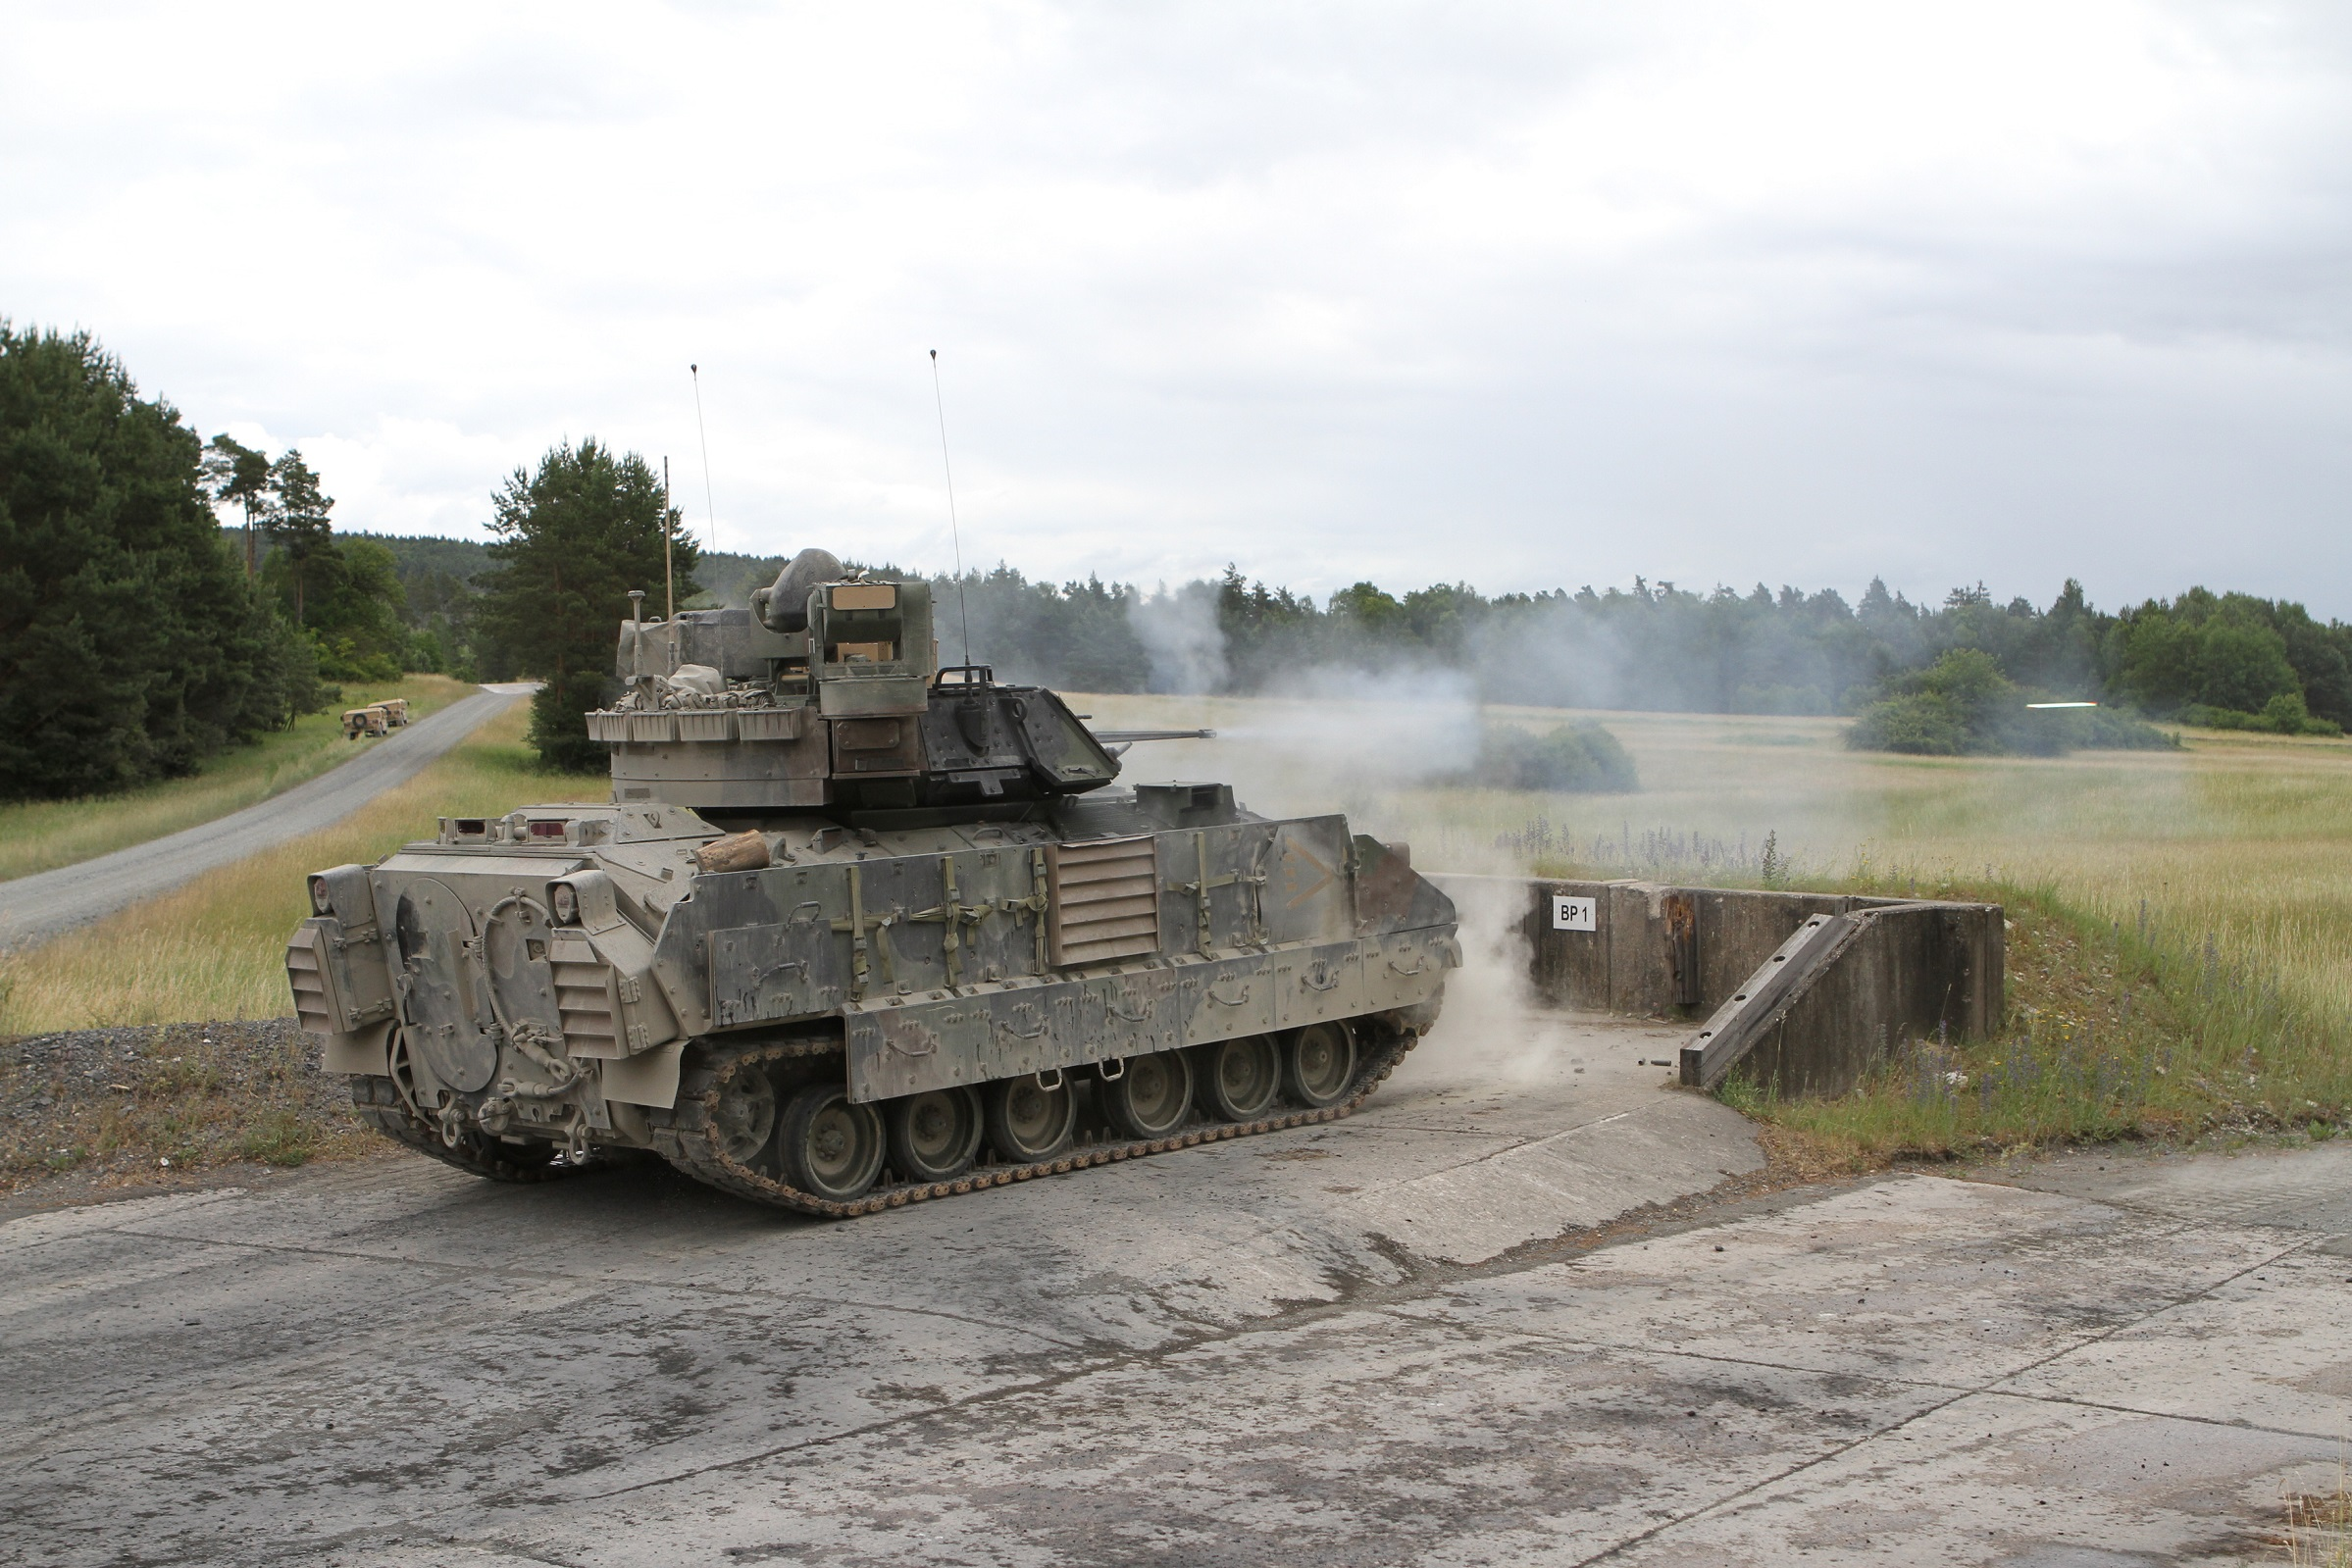 US Military News • US Army Bradley's Conduct Live Fire in Croatia • May 20, 2021